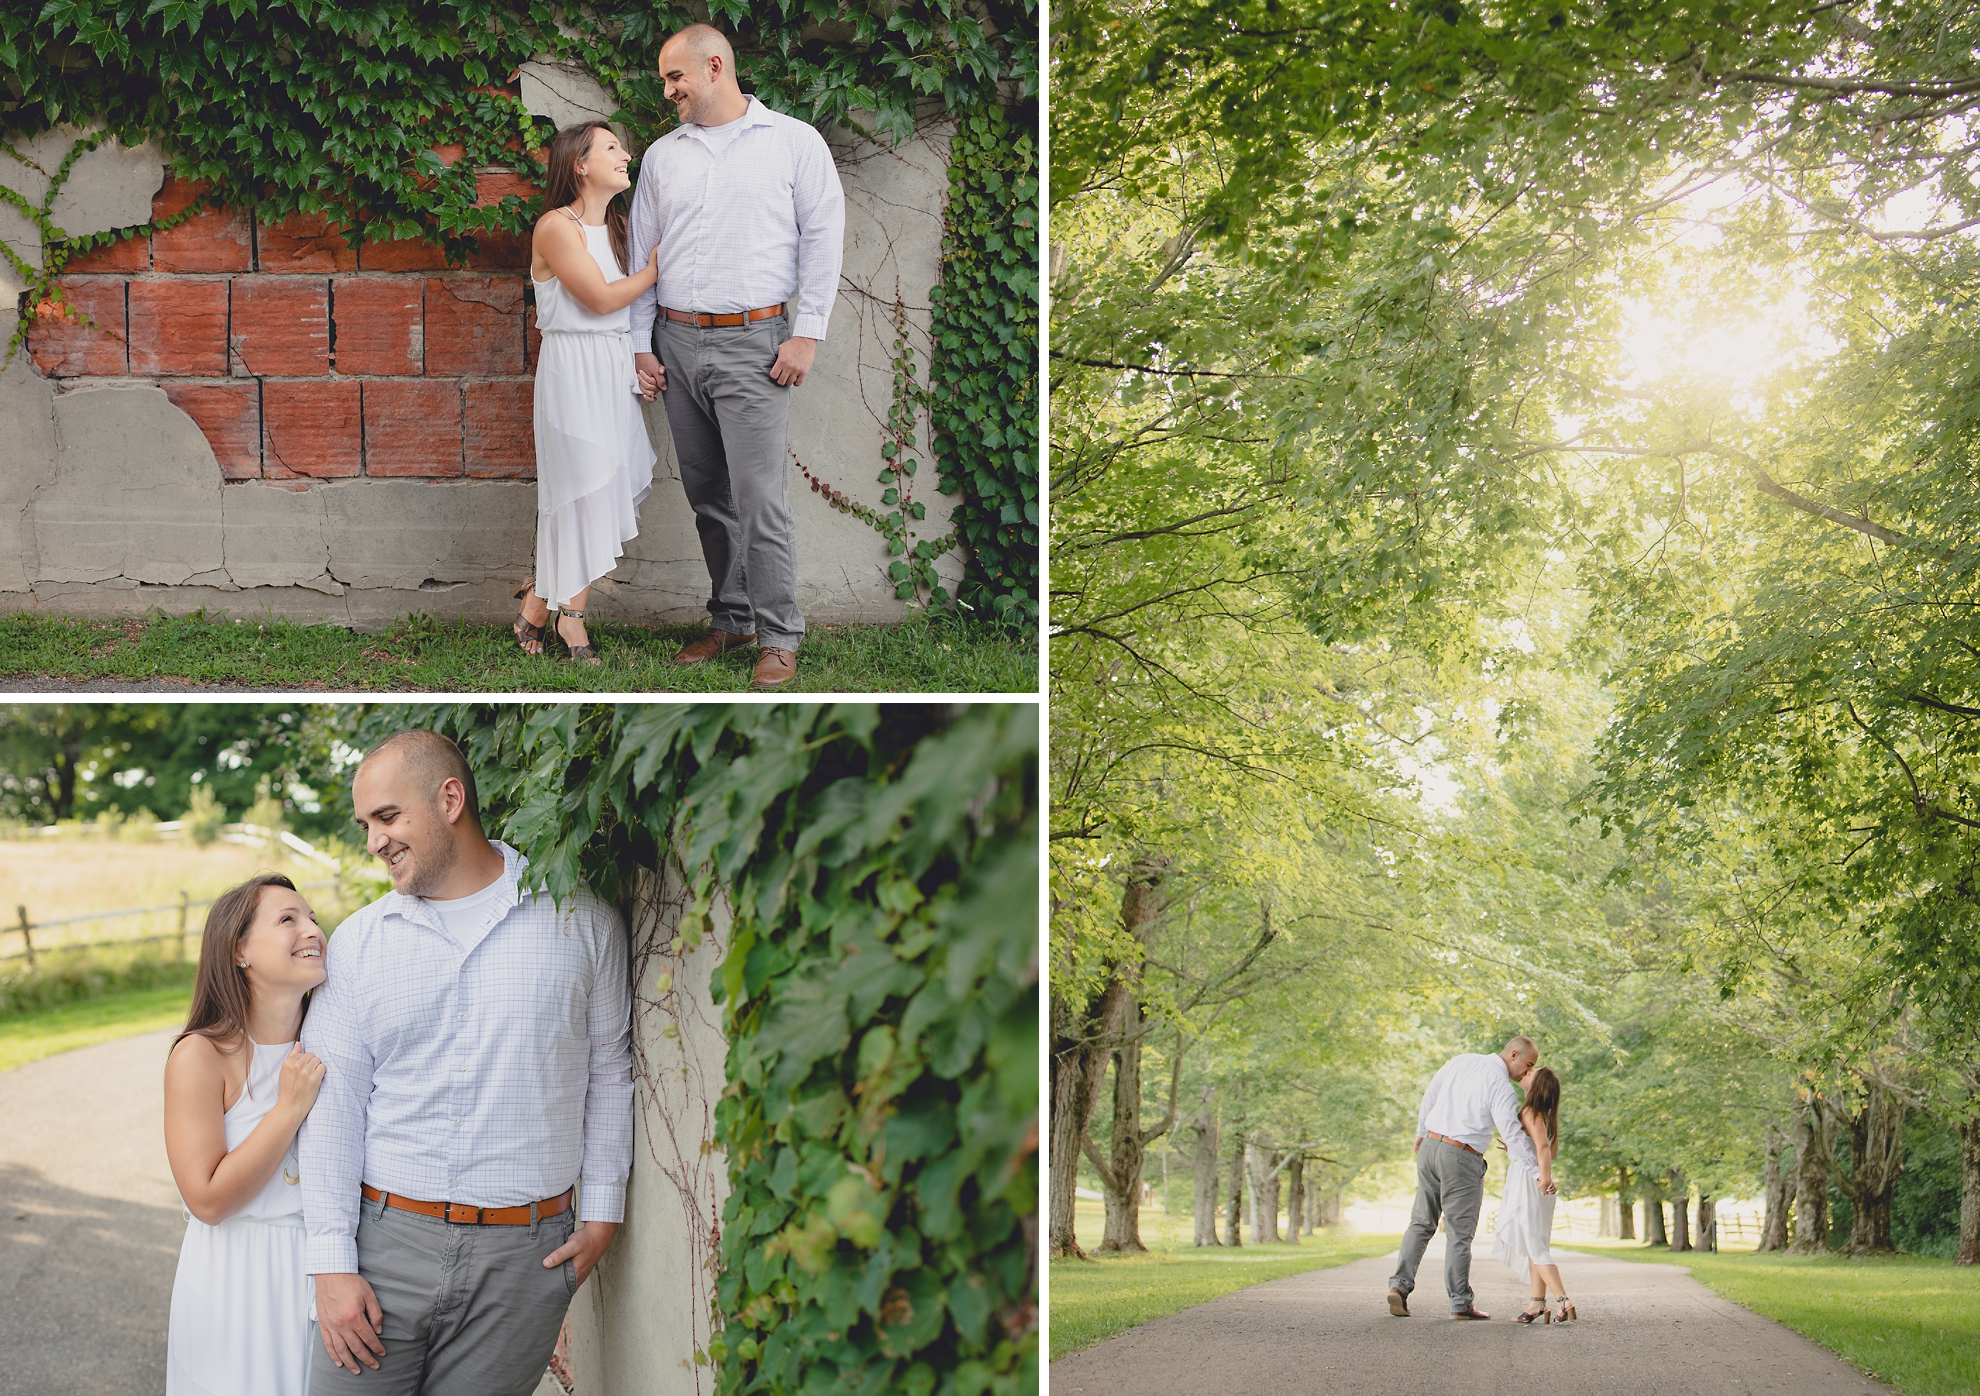 bride and groom stop to kiss while walking down tree lined road during wedding photography engagement portrait session at Knox Farm near Buffalo, NY